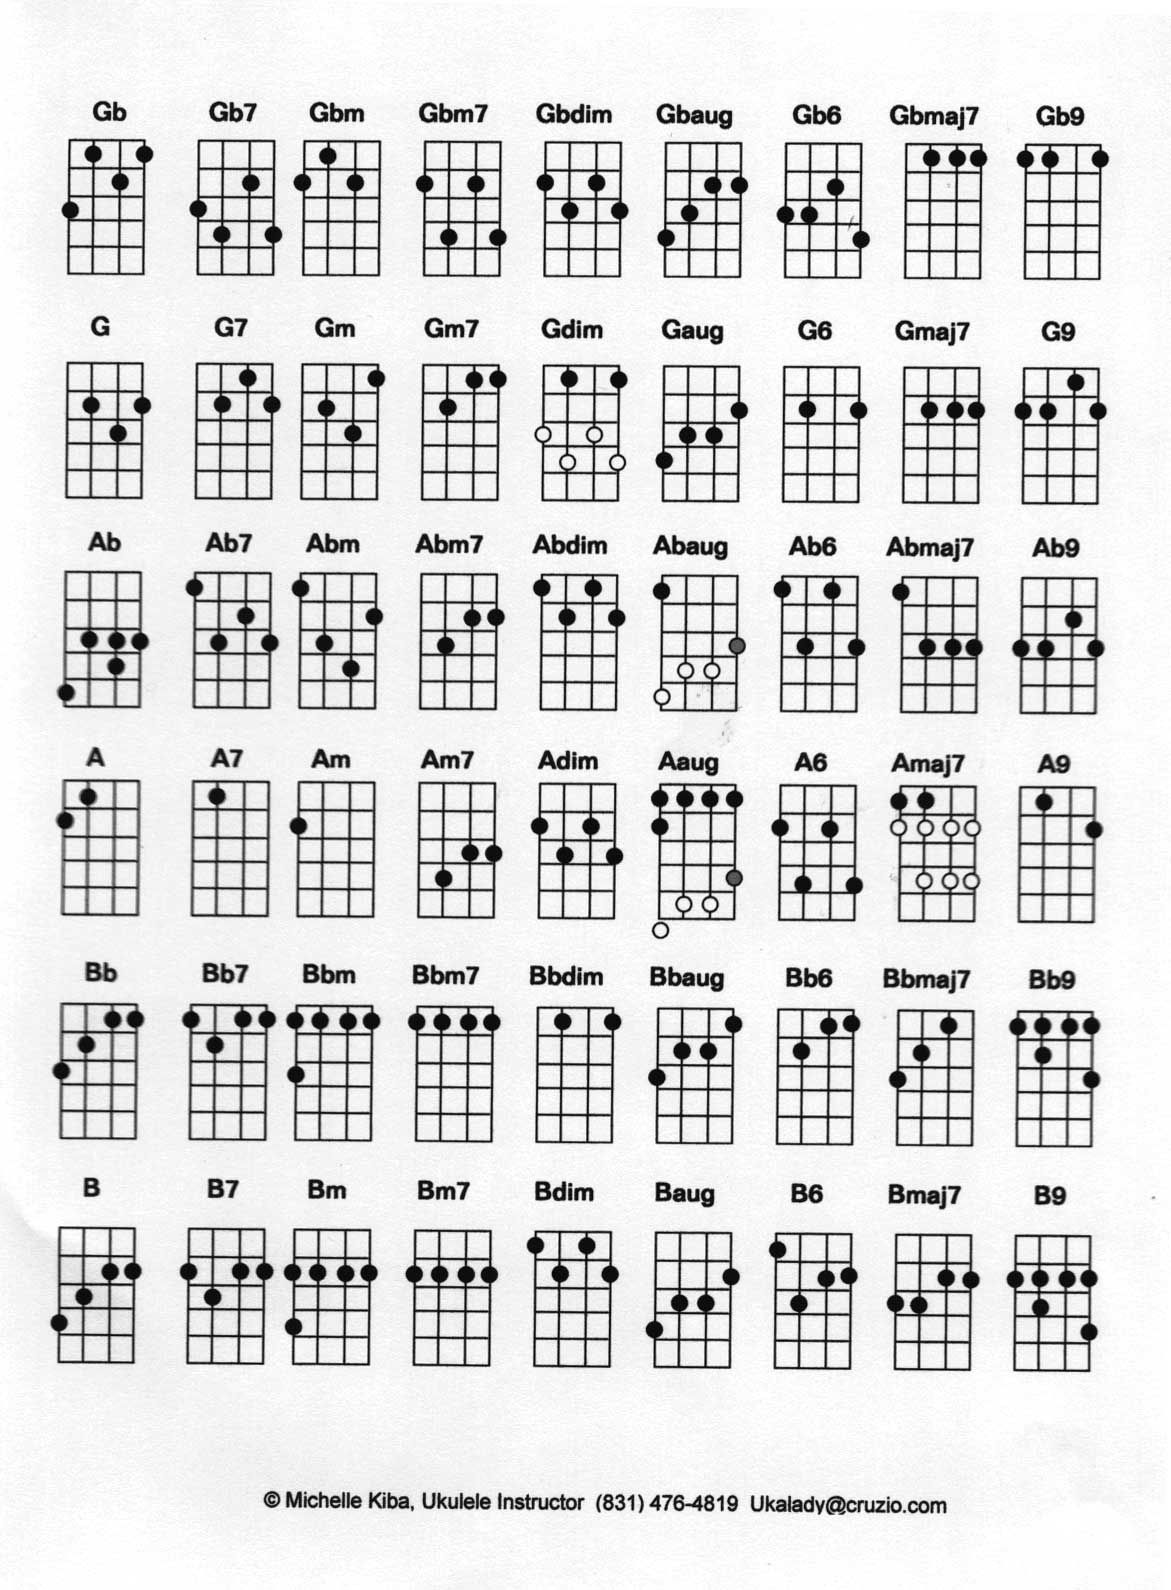 Somedayill learn to play the ukelele ukelele chord chart done ukulele chord chart standard g c e a tuning ukulele songs ukulele tabs ukulele chords ukulele lyrics ukulele tuning hexwebz Choice Image